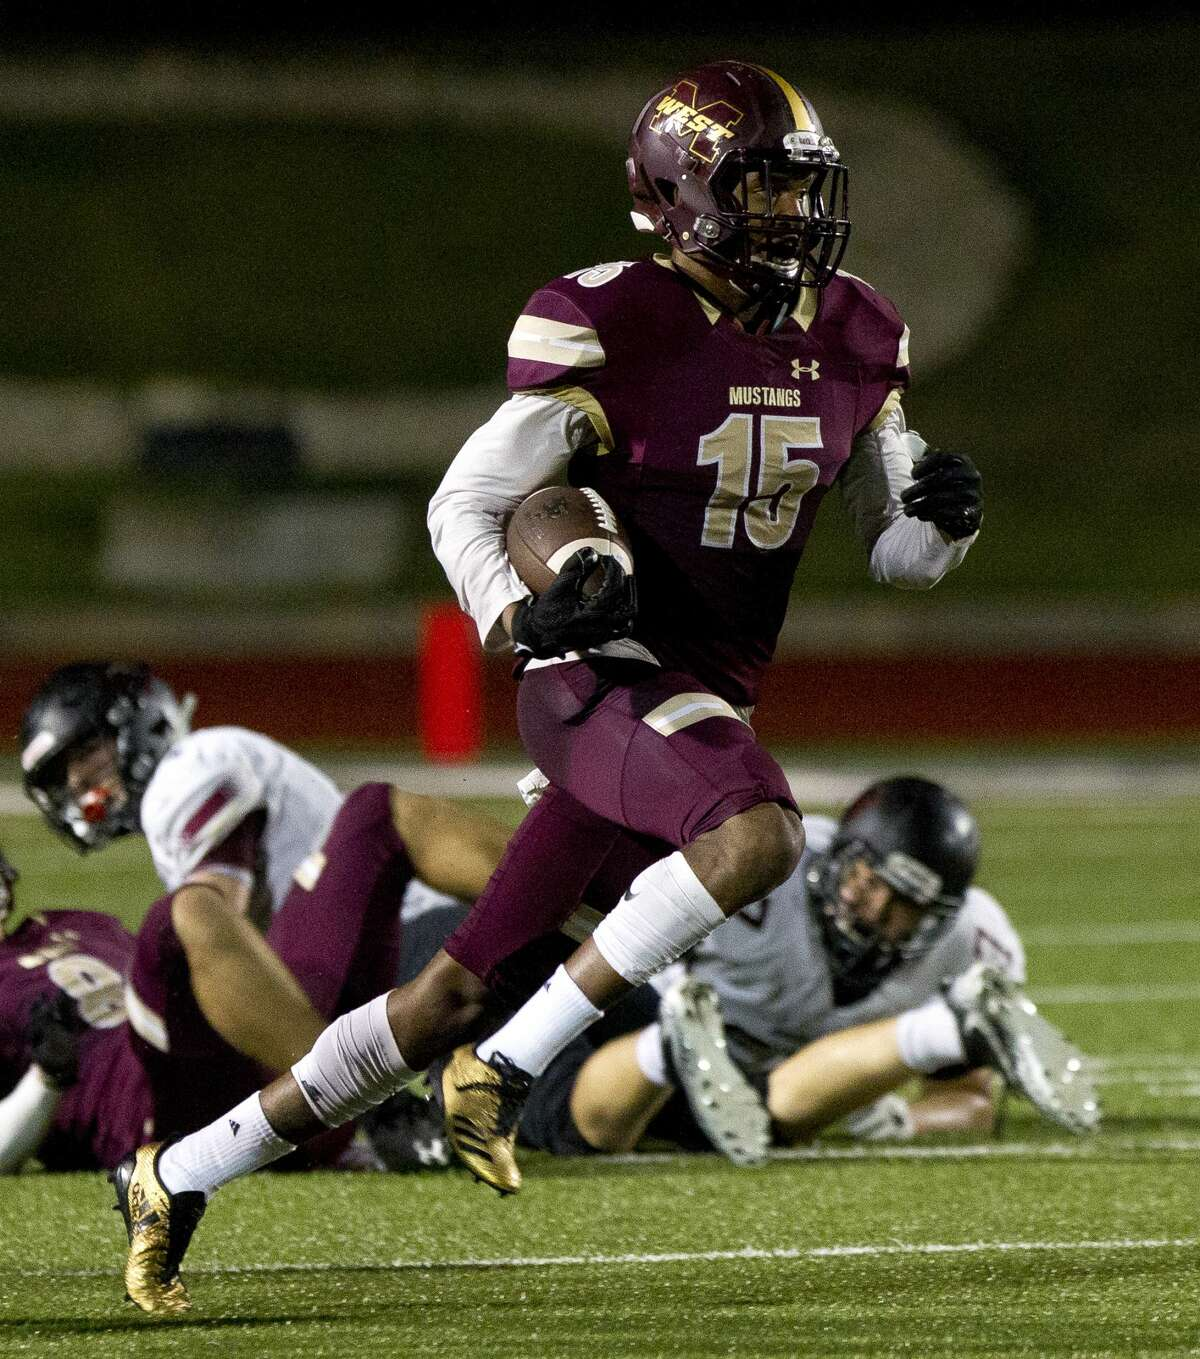 Magnolia West cornerback Ryan Franks (15) return the ball after intercepting a pass from Rouse quarterback Ethan Moore (18) during the second quarter of a Region III-5A bi-district high school football game at Merrill Green Stadium, Friday, Nov. 17, 2017, in Bryan.